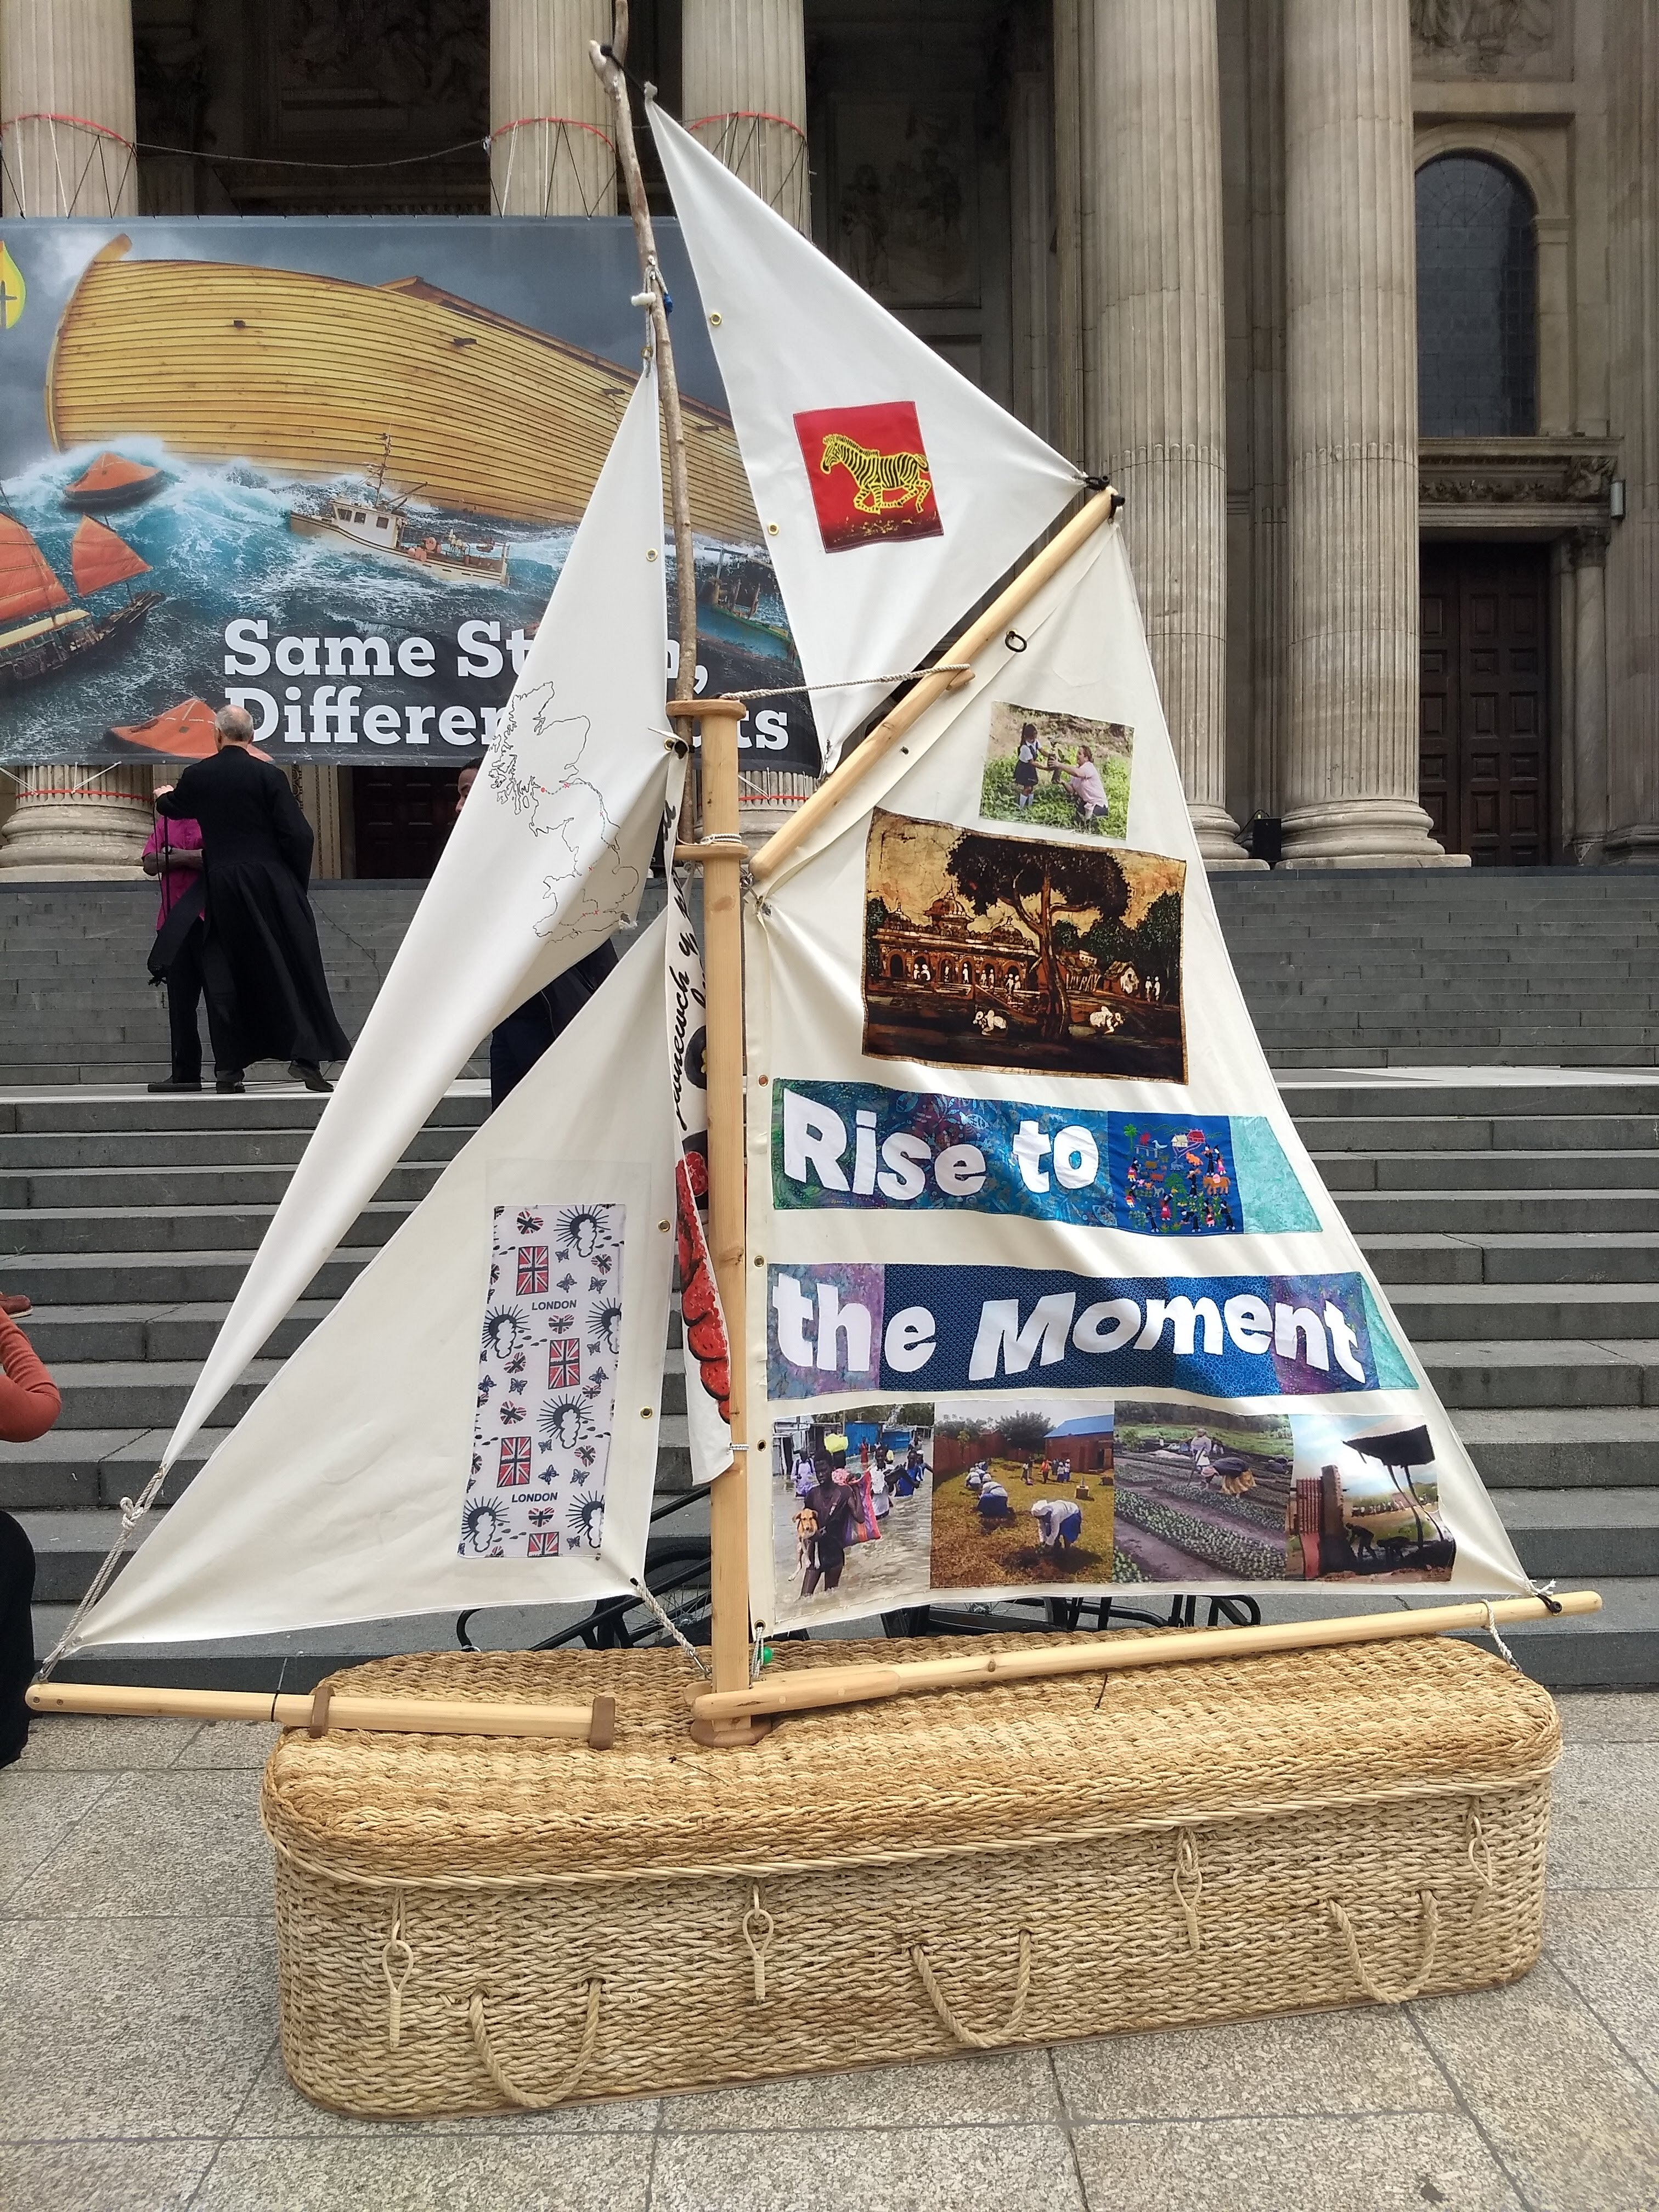 The pilgrim boat made of wicker, wood and banners with Rise to the Moment caption